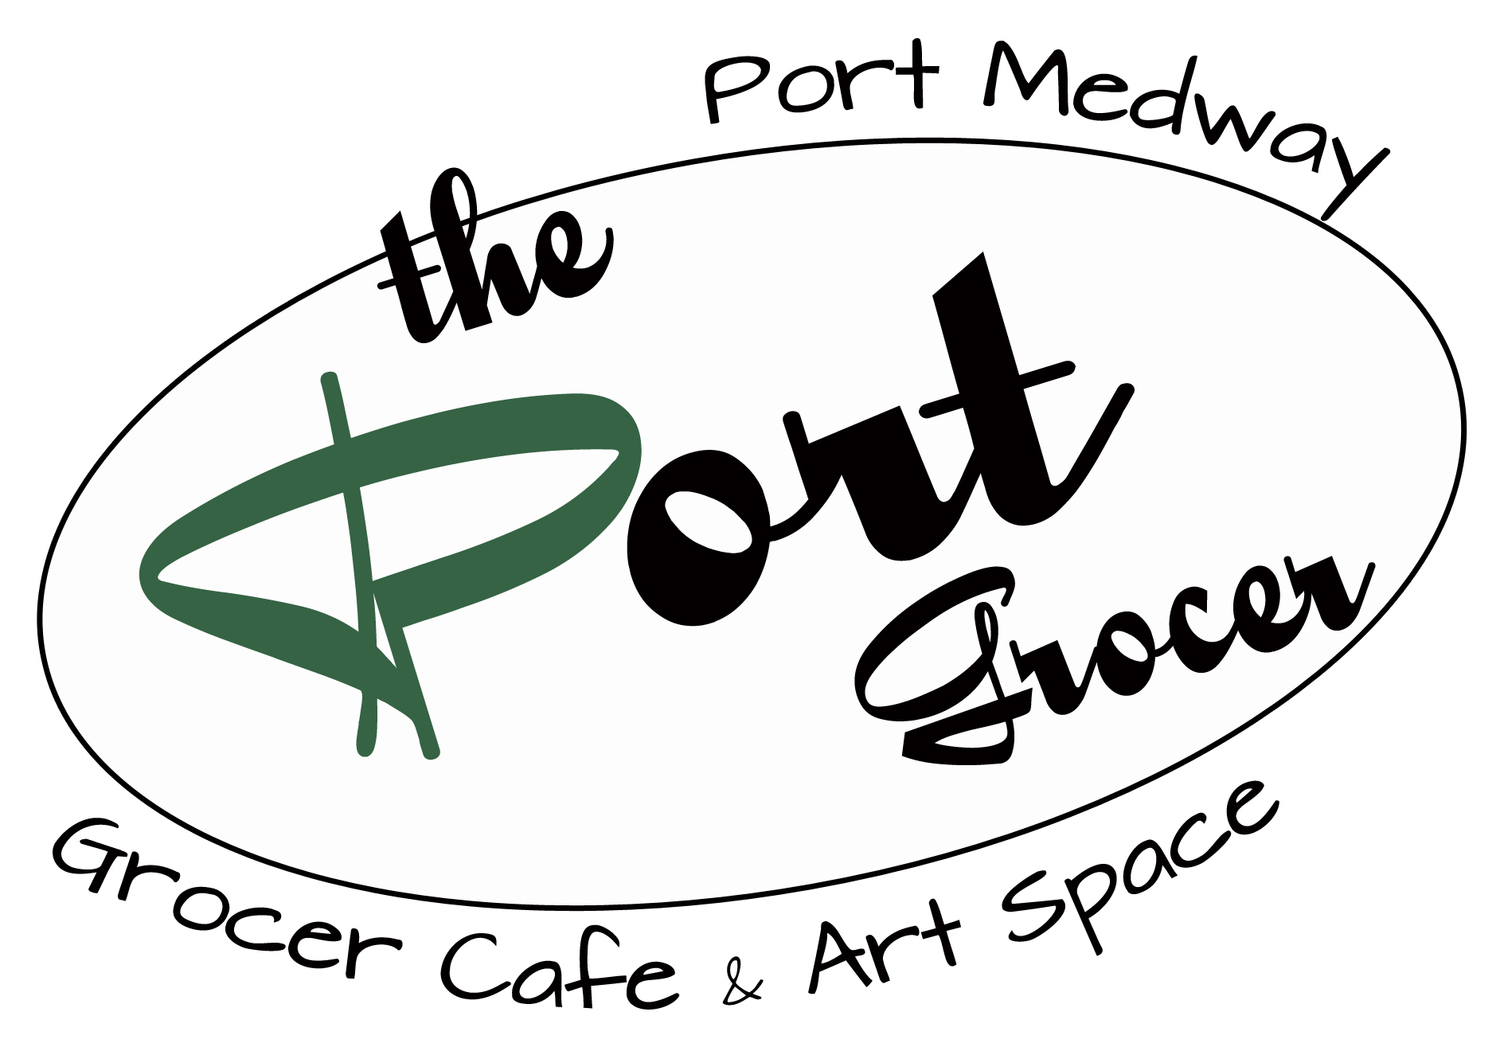 The Port Grocer